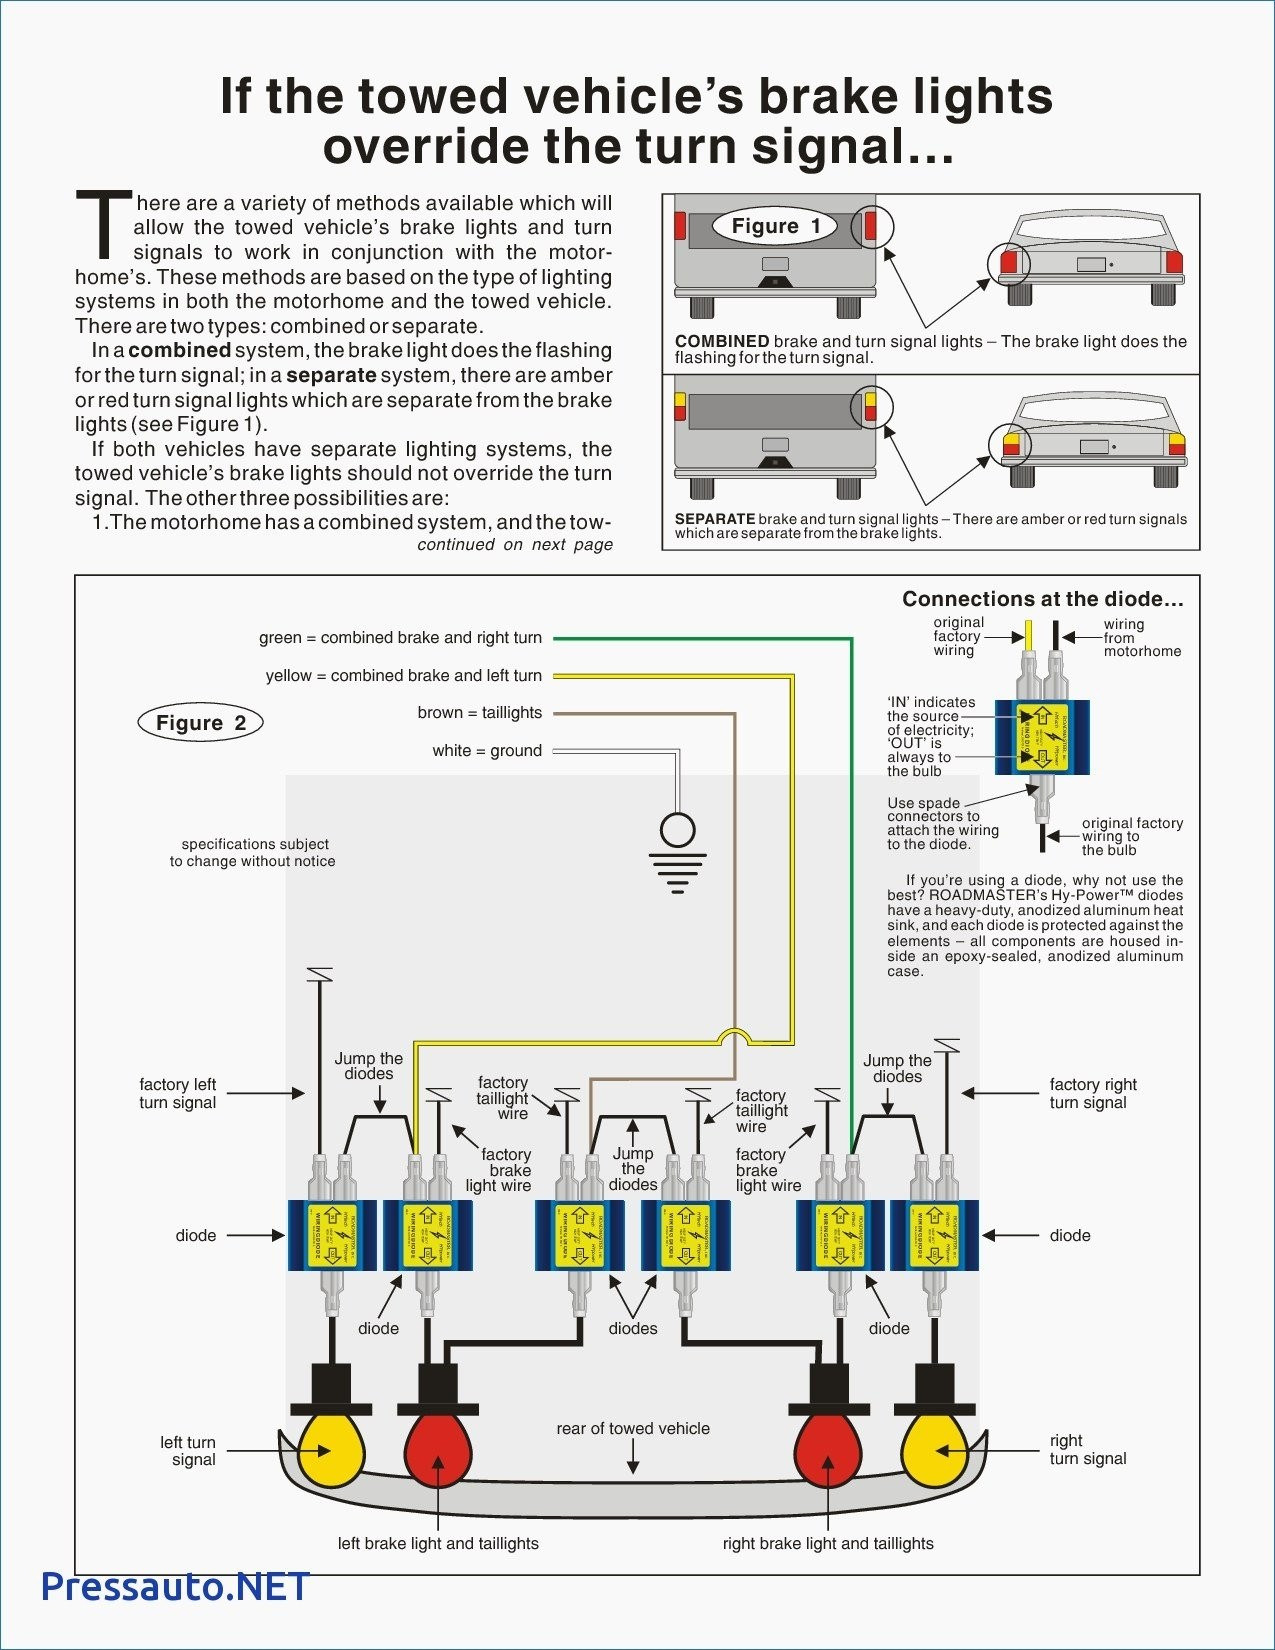 Grote Lights Wiring Diagram Grote Tail Light Wiring Diagram Wiring Diagram Schematic Of Grote Lights Wiring Diagram